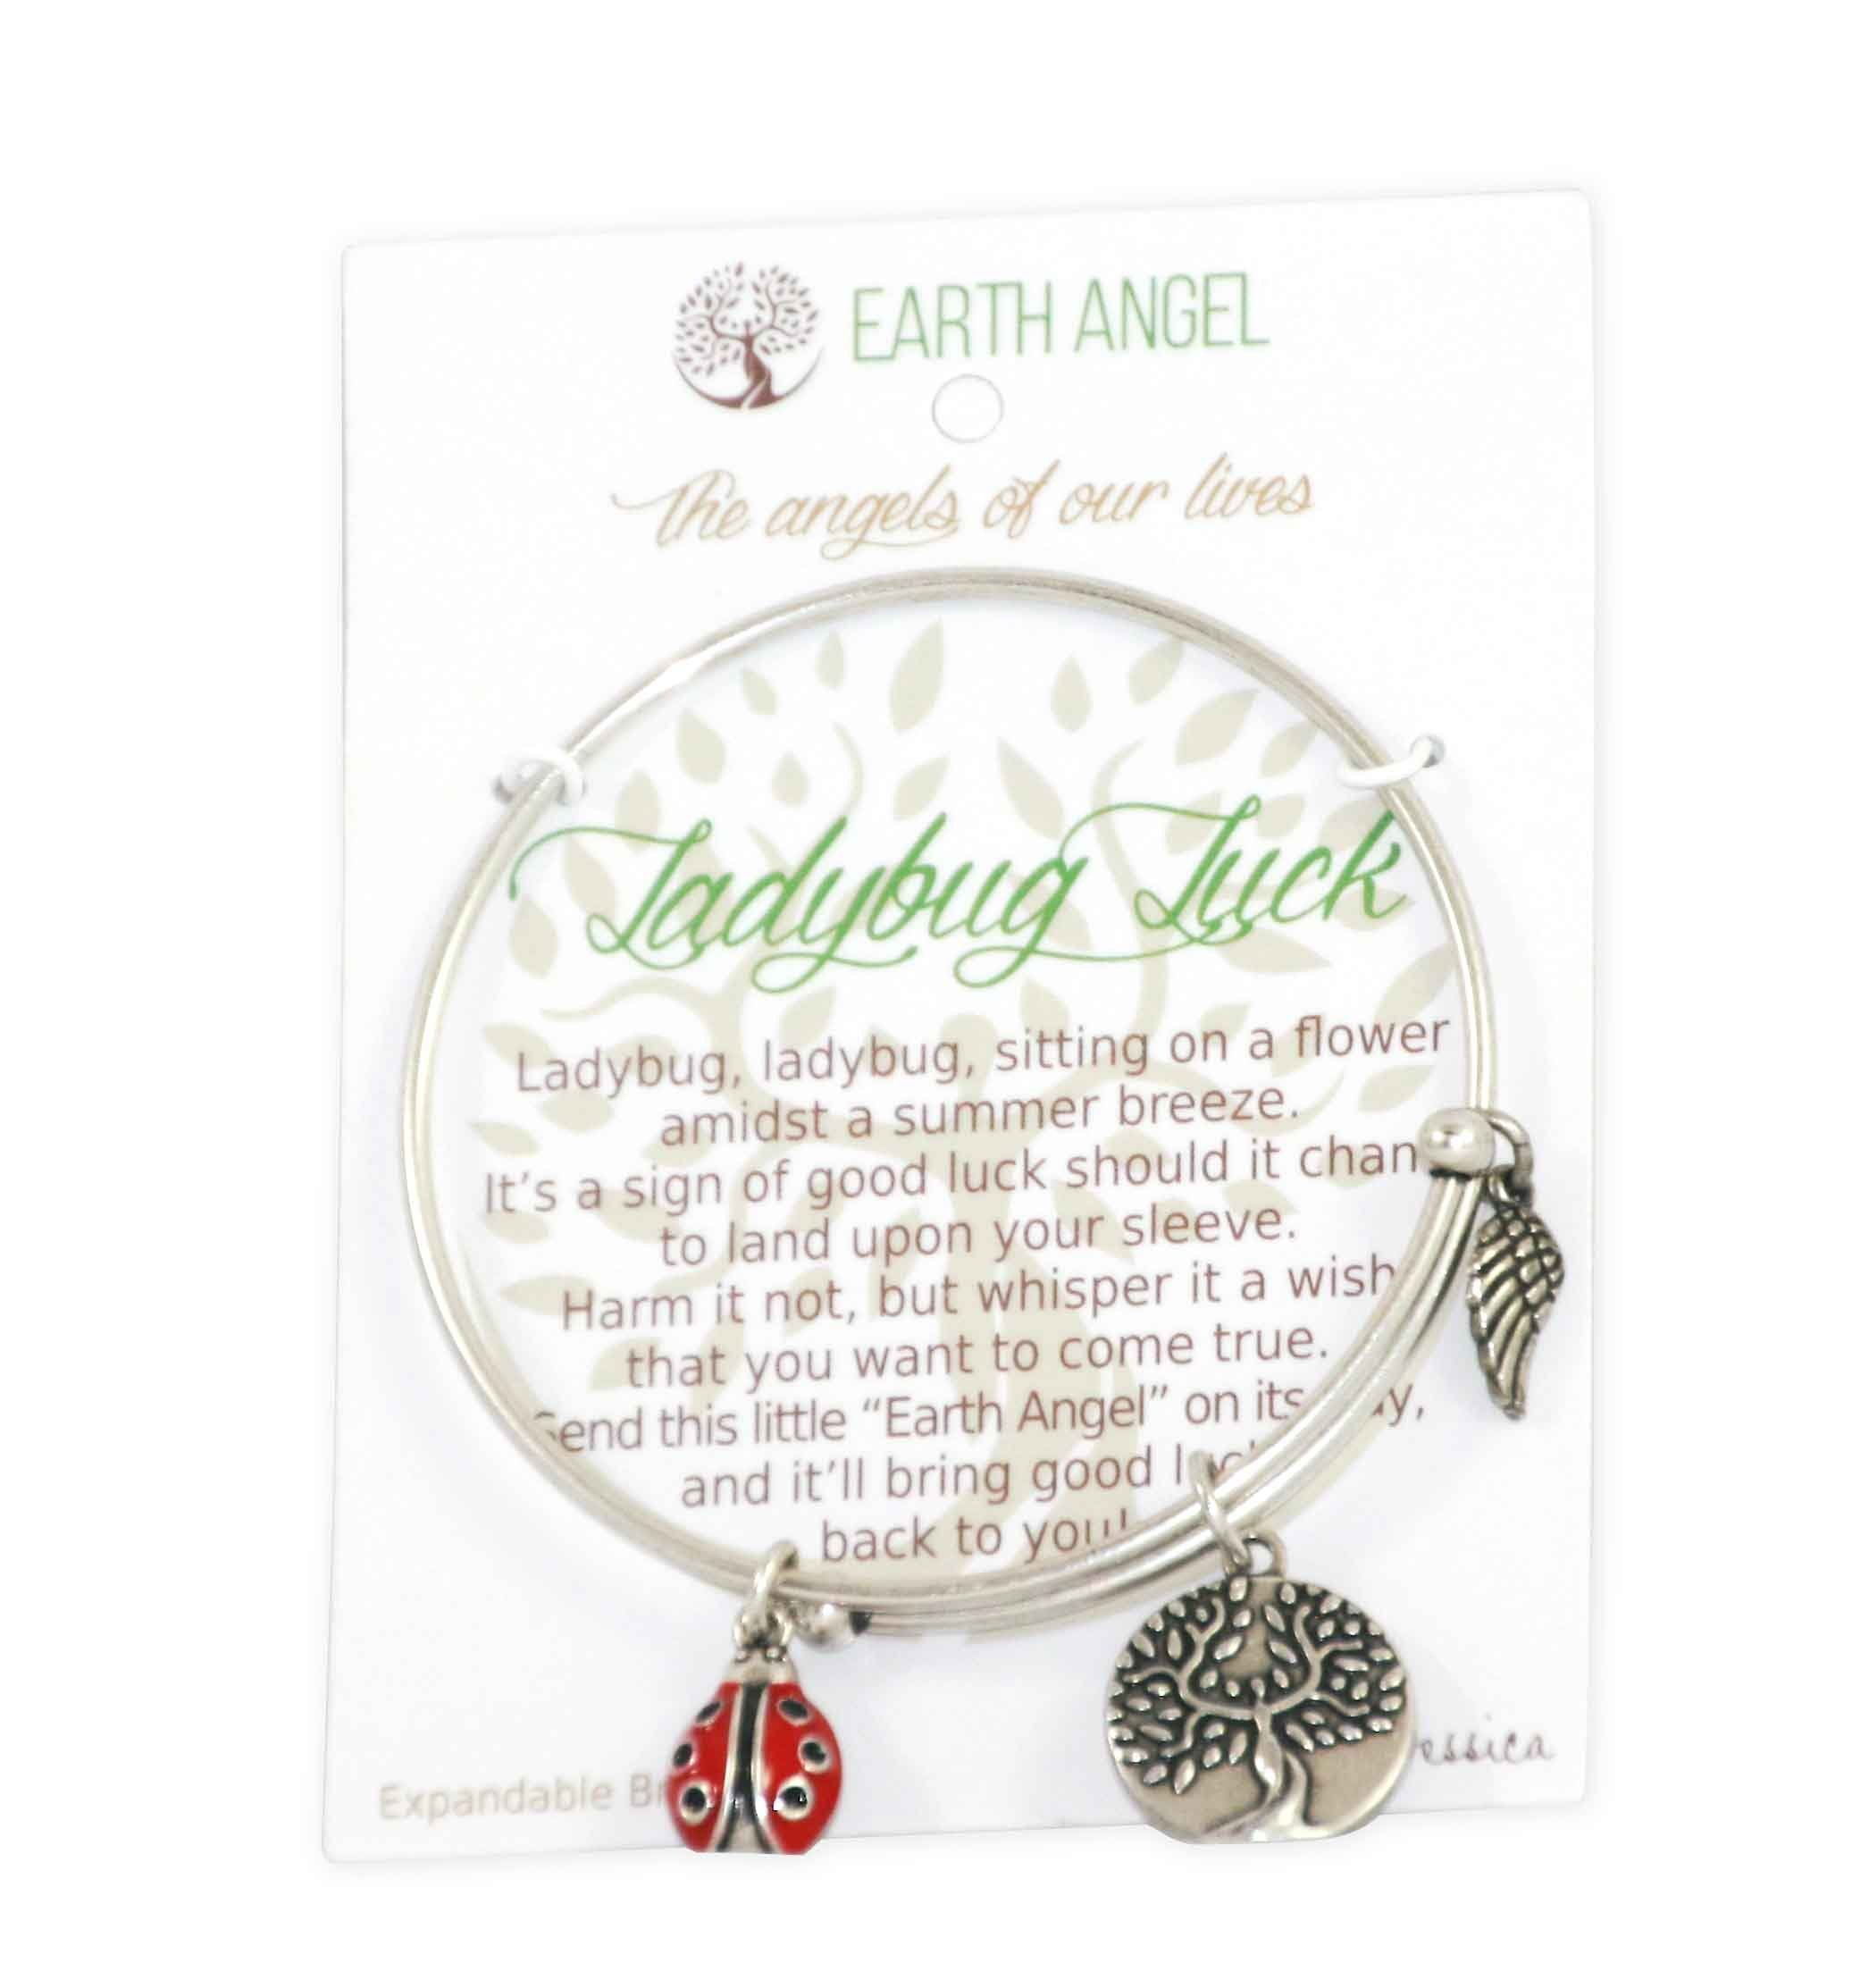 Earth Angels Ladybug Luck Bangle Charm Bracelet Silvertone